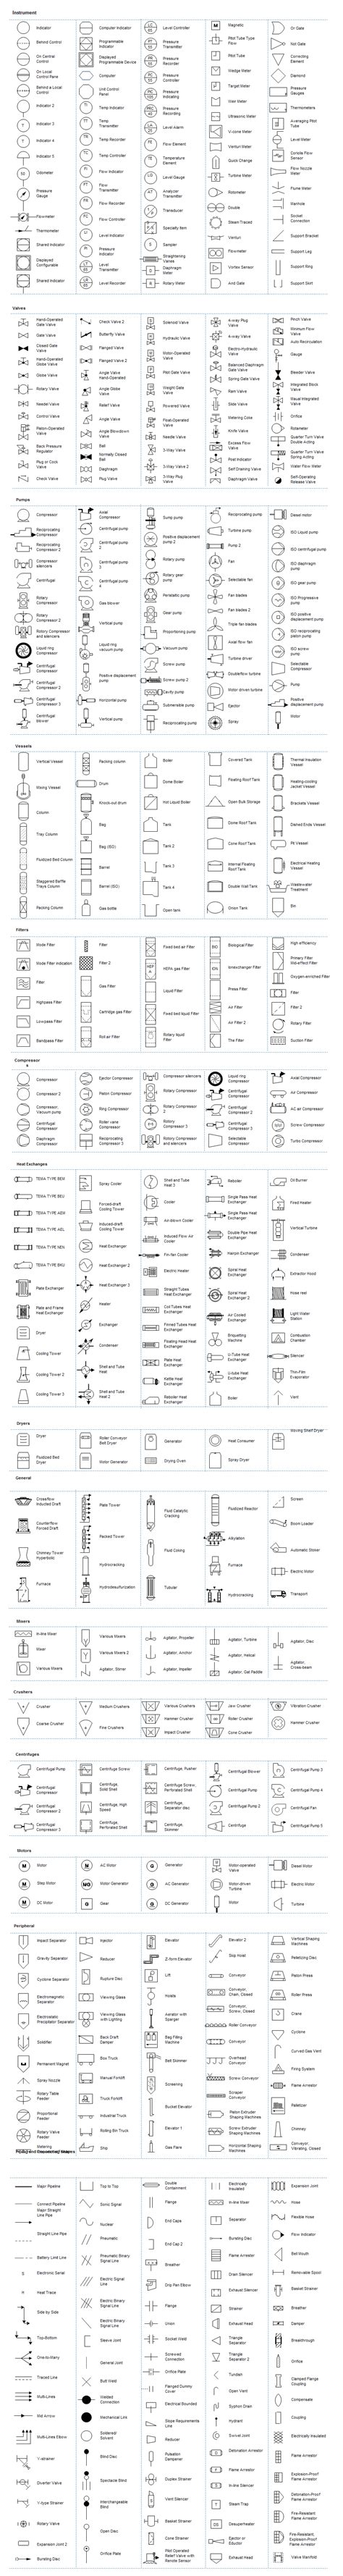 Plumbing Symbols Legend by Piping Legend Drainage Channel Diagram Map Of Metro